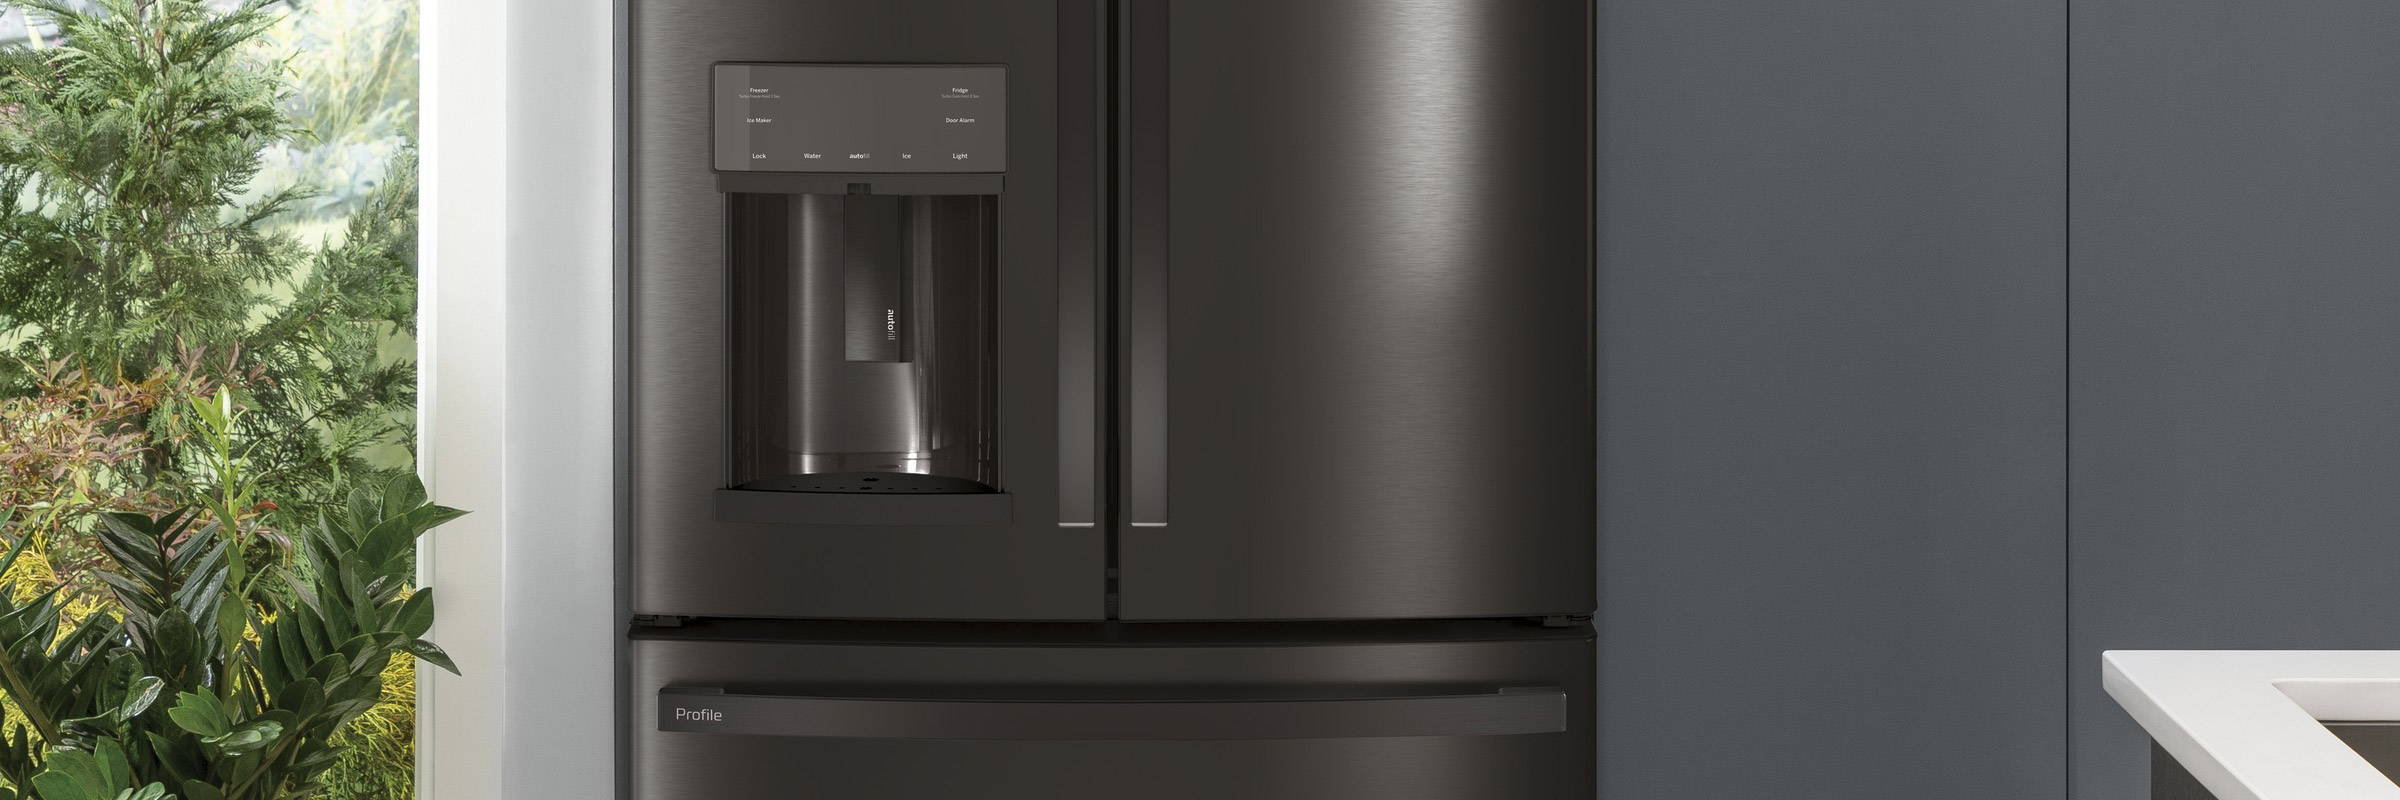 Ge Refrigerators And Freezers